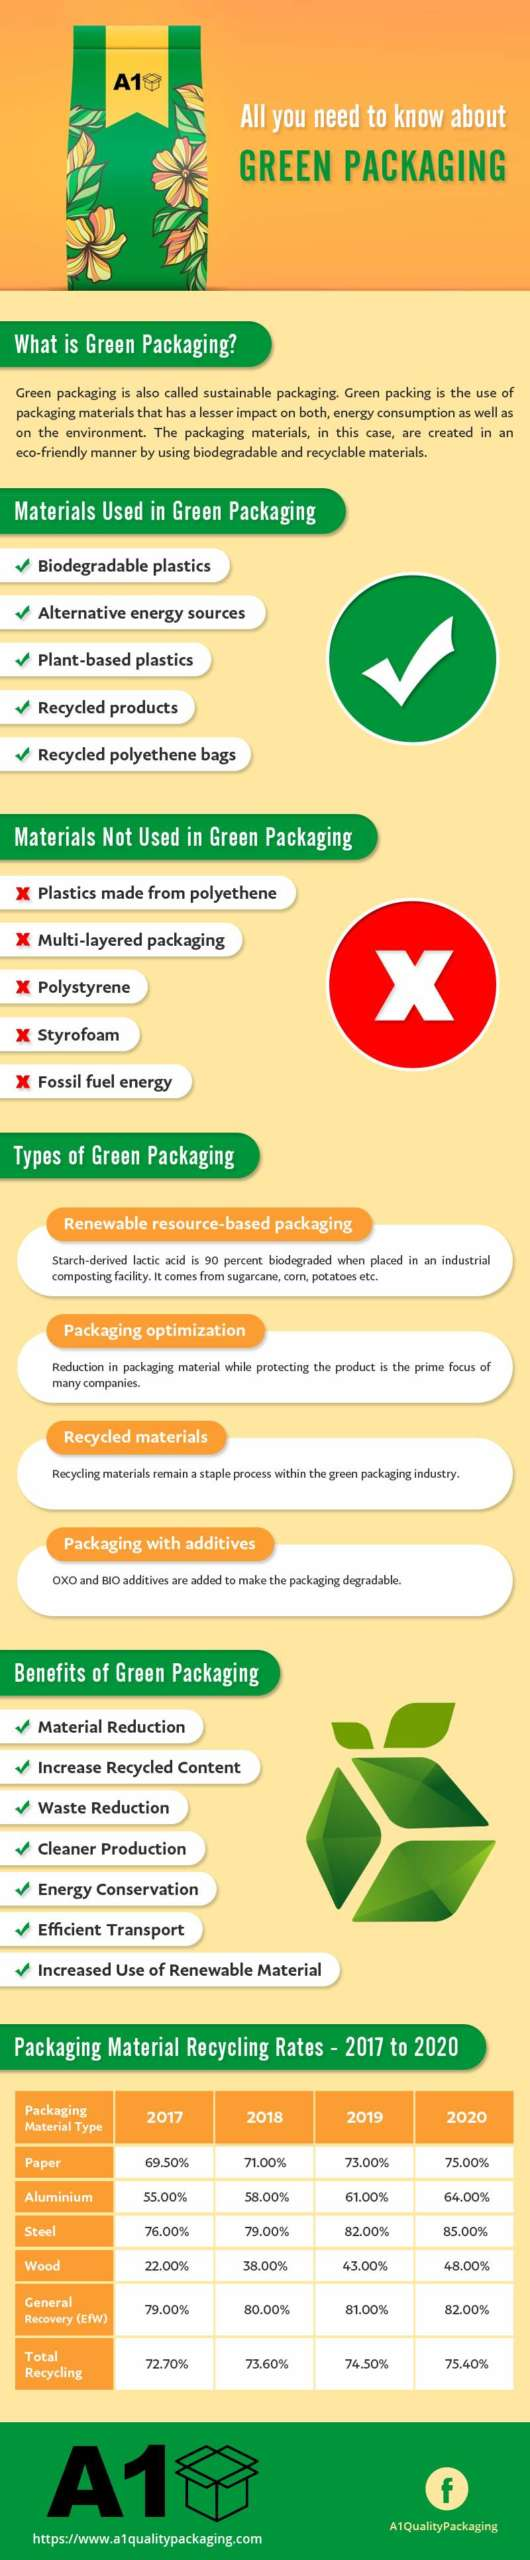 About Sustainable Green Packaging